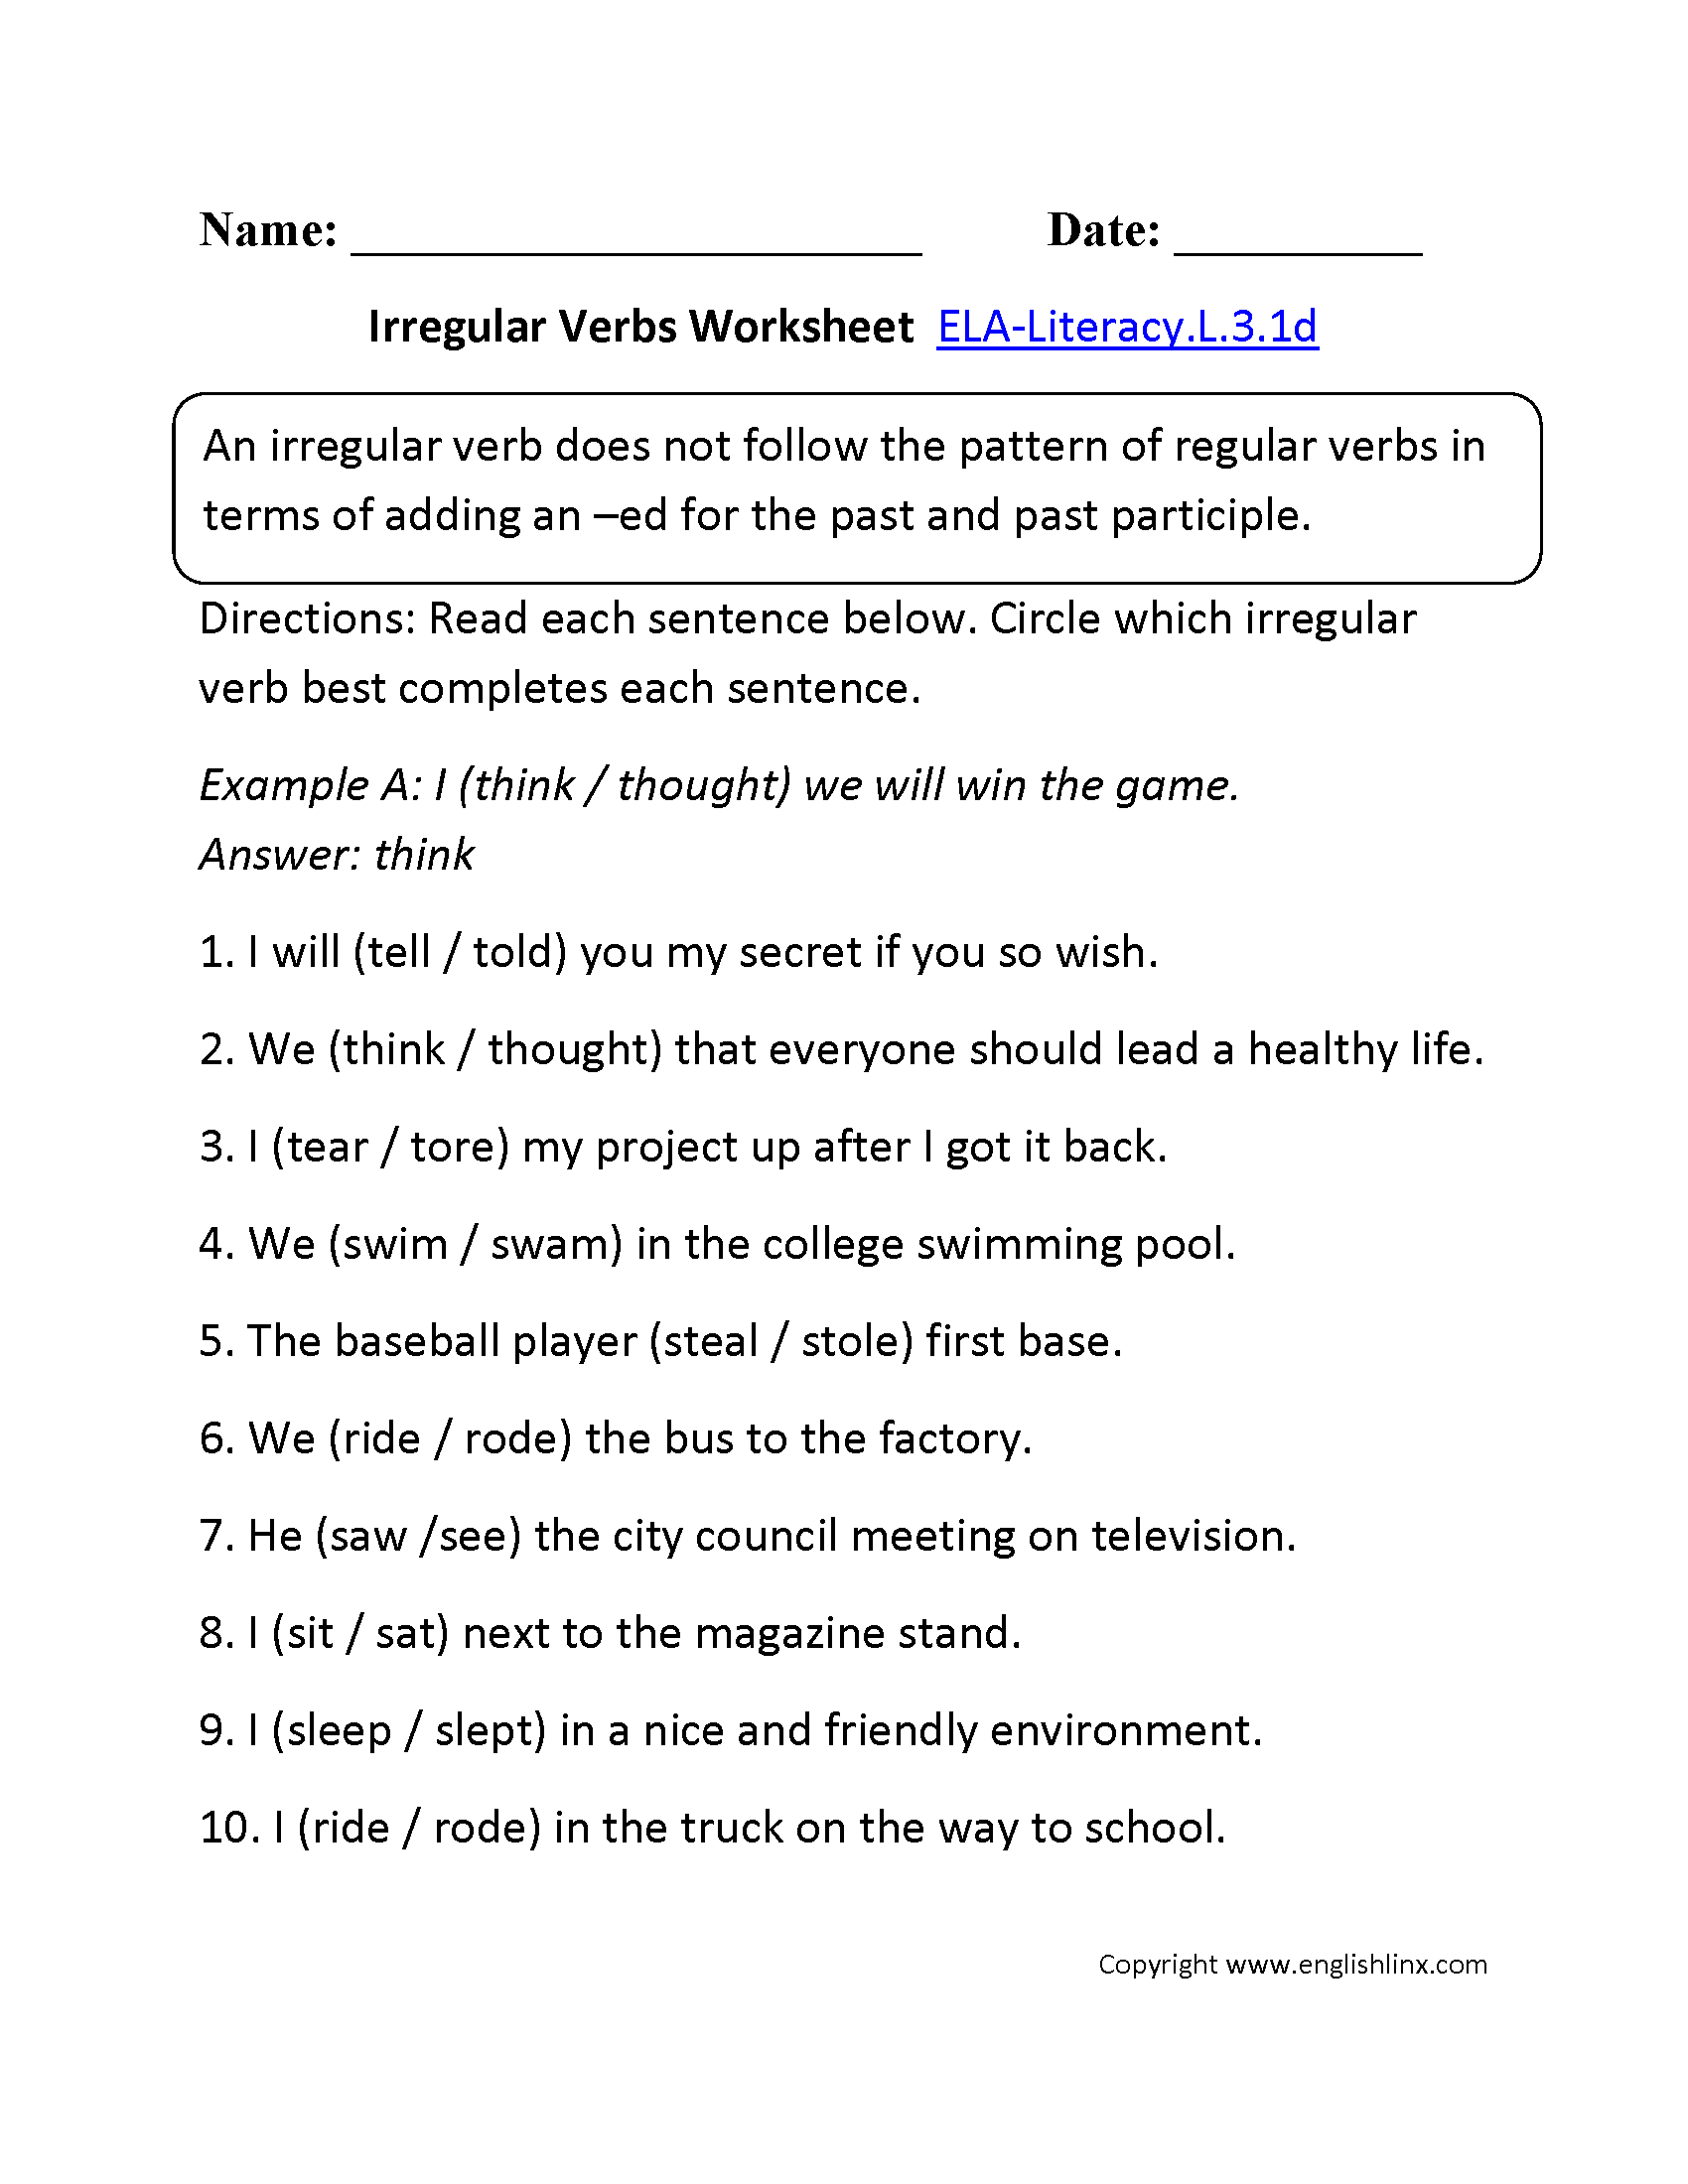 Irregular Verbs Worksheet 1 Ela Literacy L 3 1d Language Worksheet Tefl